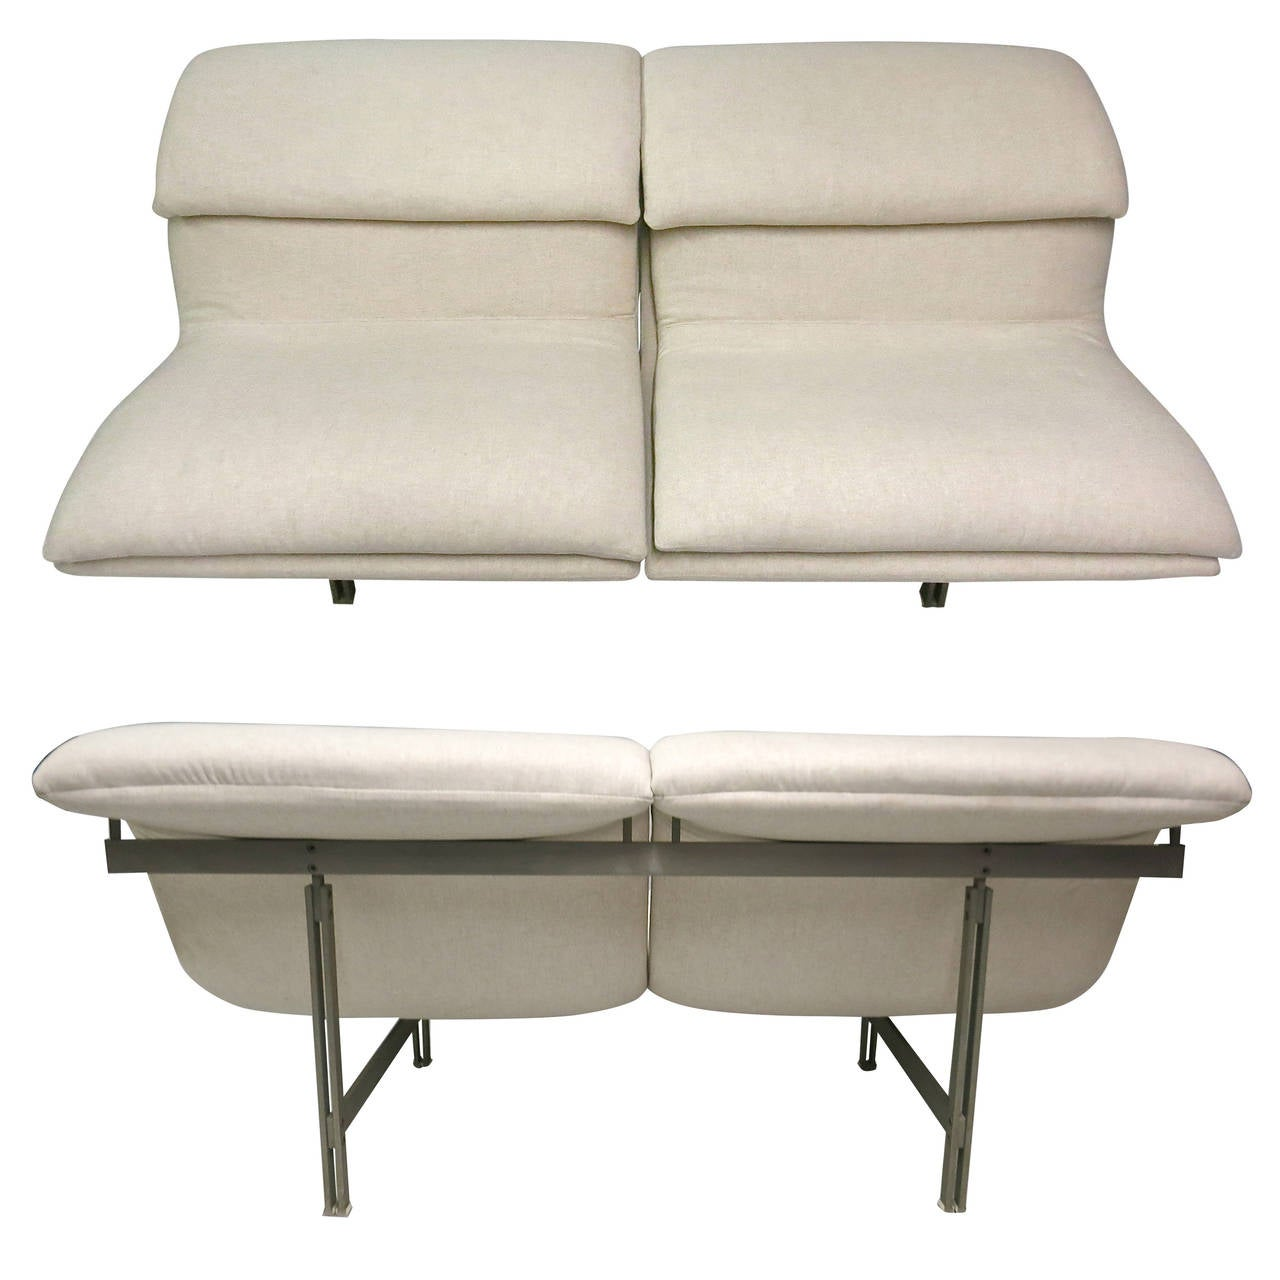 Pair of Two-Seater Sofas by Saporiti Fabricated by Saporiti Italia, Circa 1970 For Sale